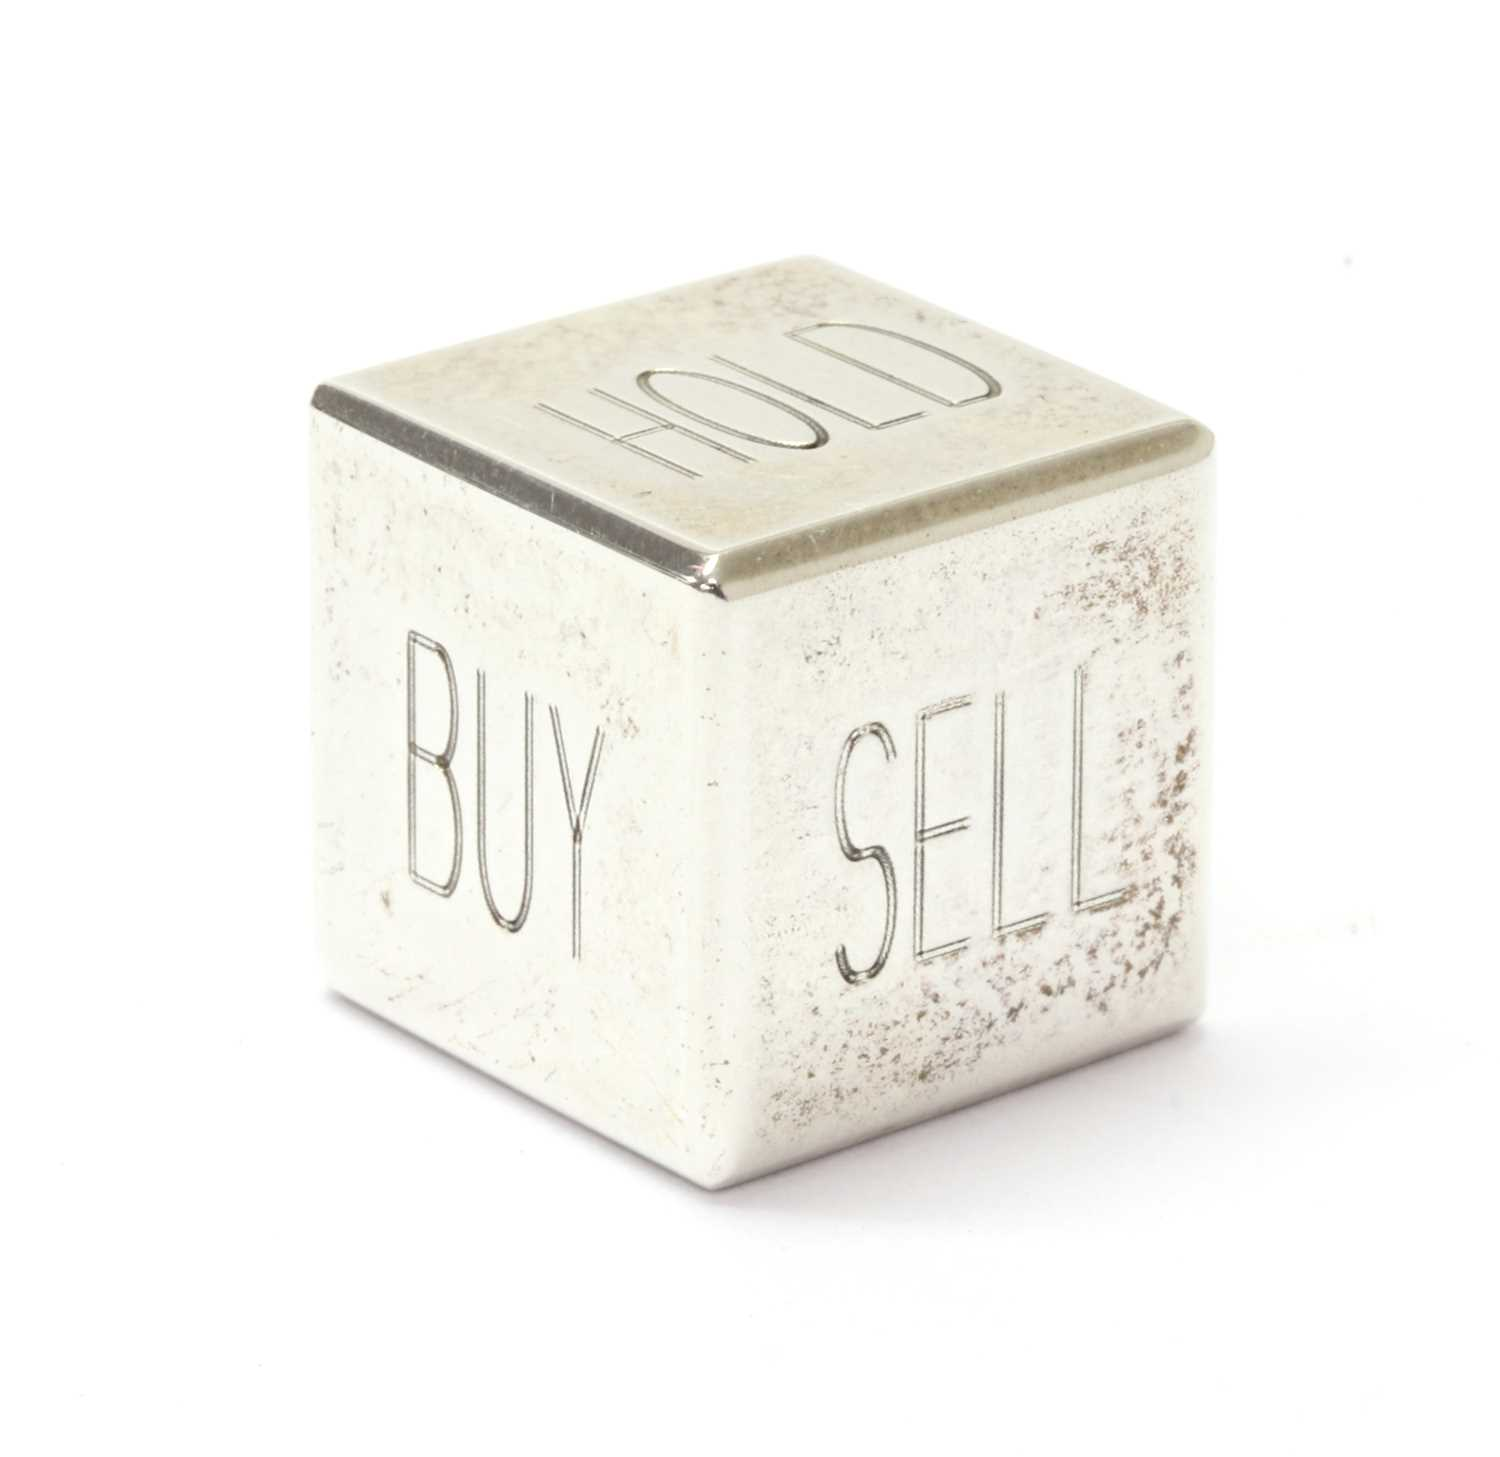 A sterling silver Tiffany & Co. 'Buy, Sell, Hold' decision maker die, - Image 2 of 2